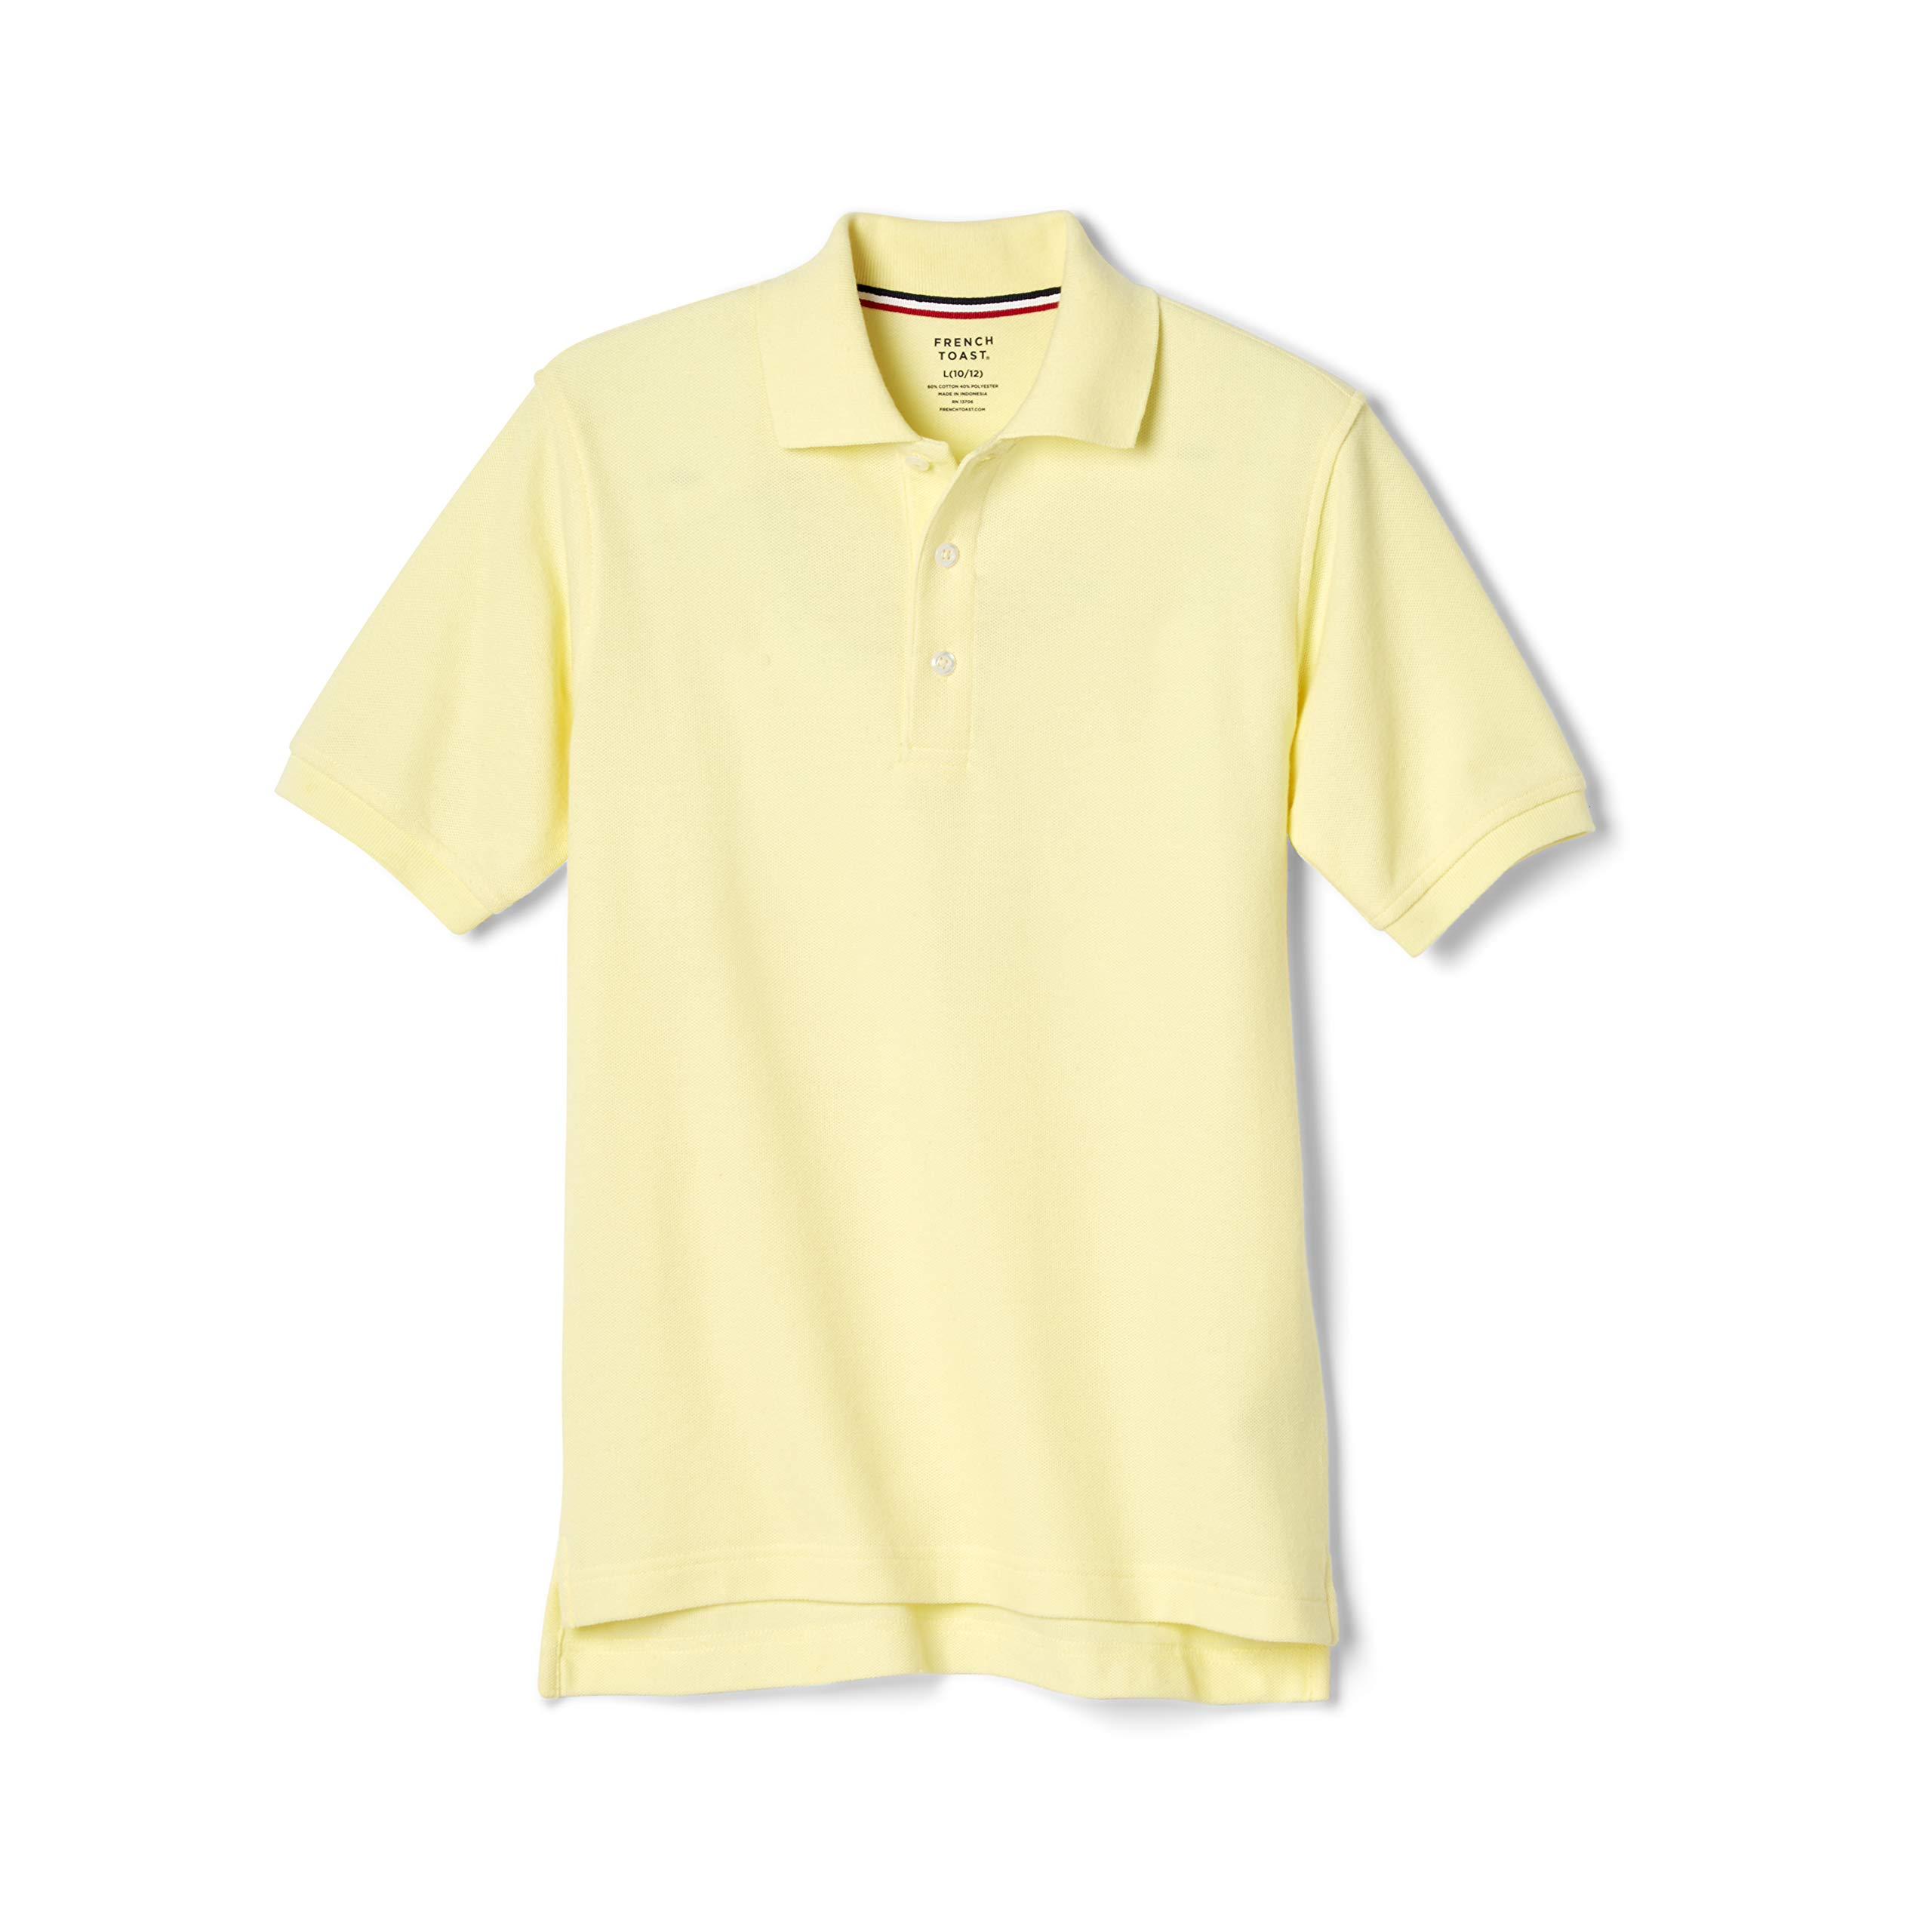 French Toast Boys' Little Short Sleeve Pique Polo Shirt (Standard & Husky), Yellow, S (6/7) by French Toast